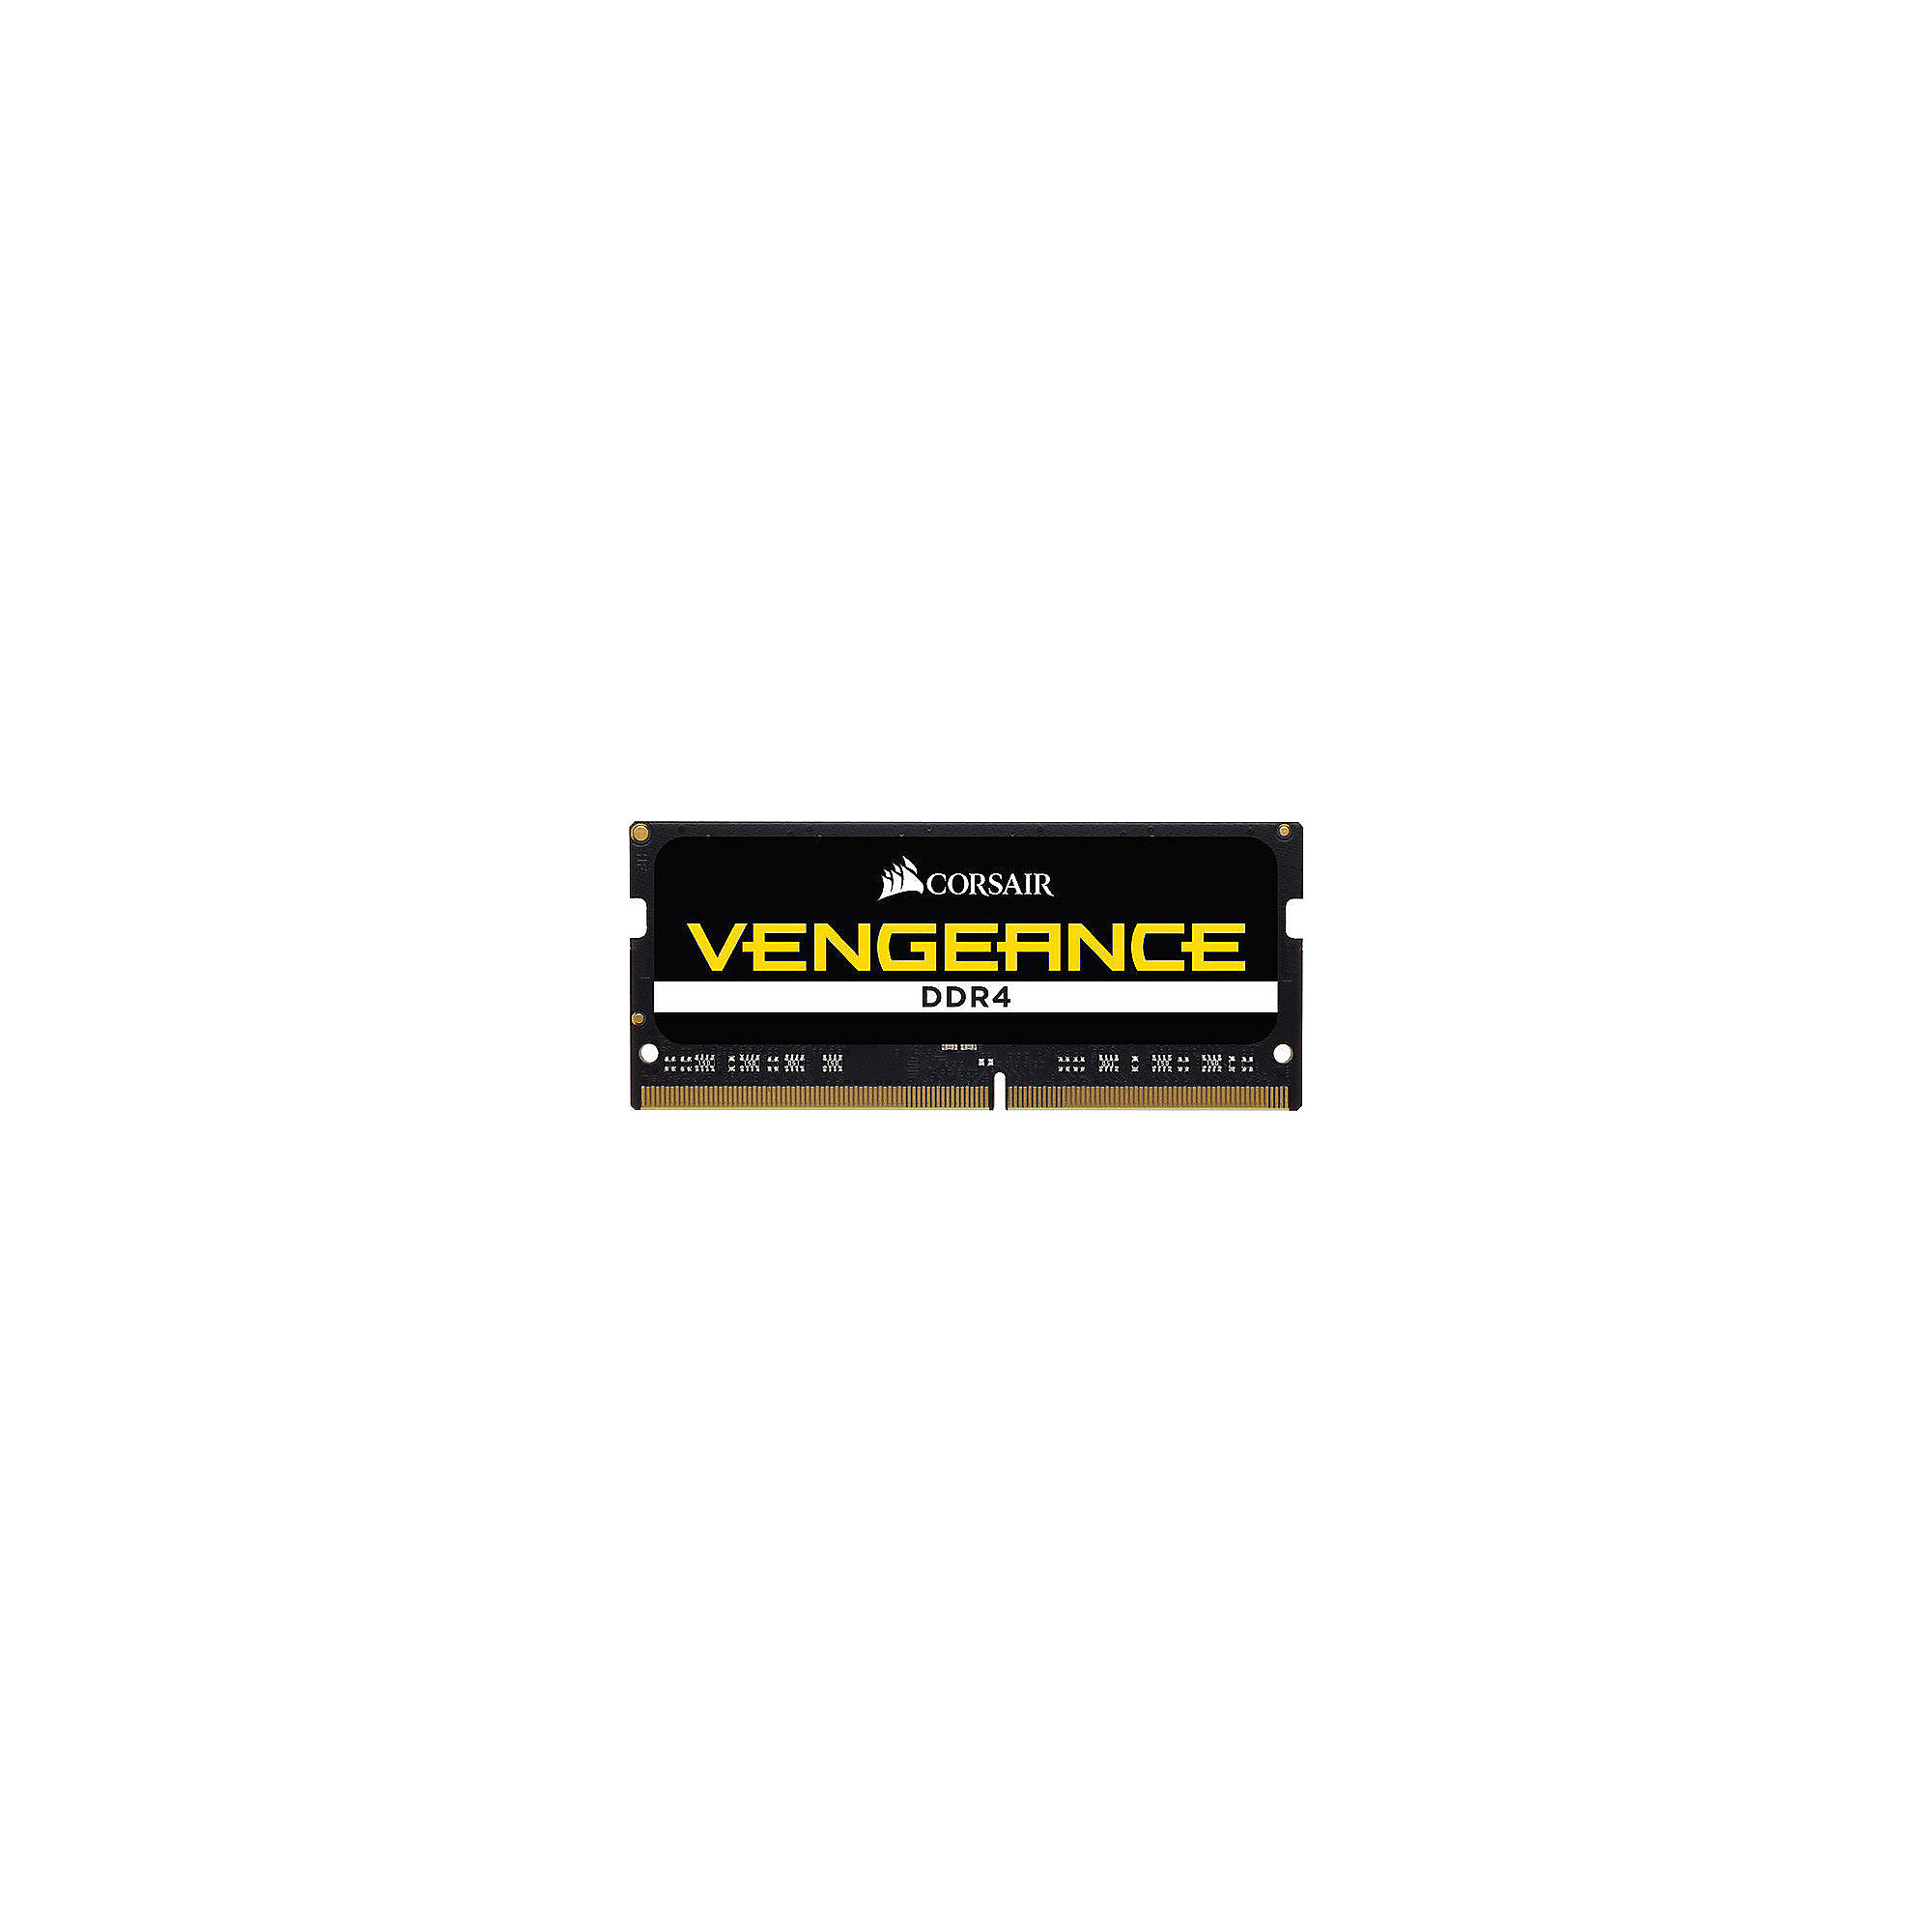 32GB (2x16GB) Corsair Vengeance DDR4-2400 MHz CL 16 SODIMM Notebookspeicher Kit